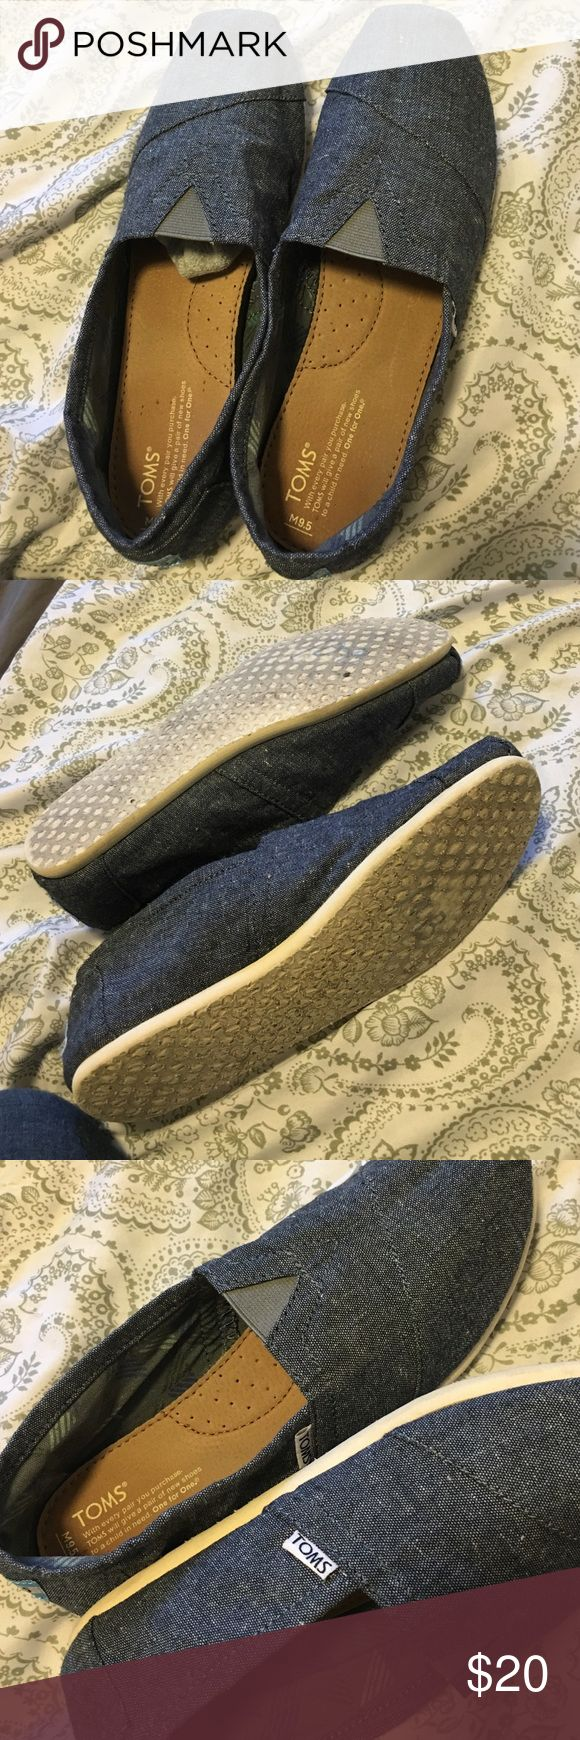 Toms Kind a good condition and clean TOMS Shoes